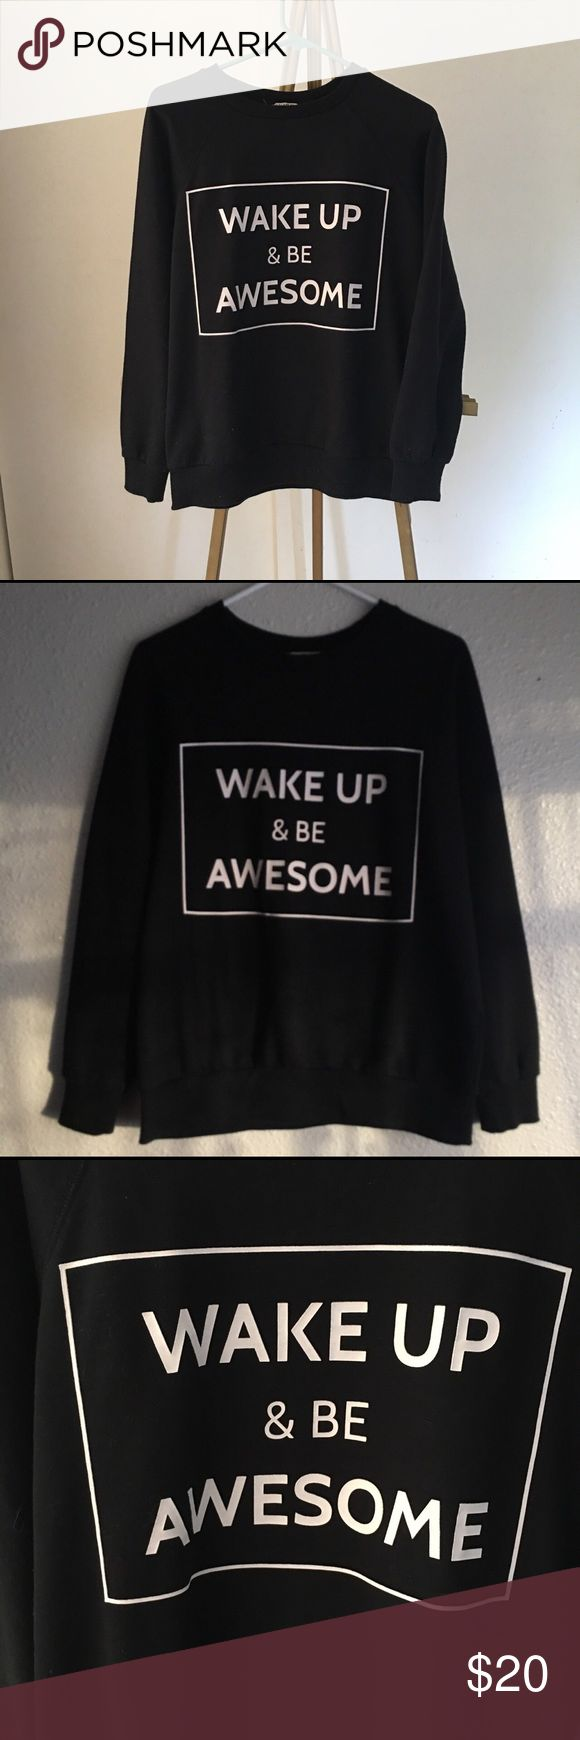 COOL SWEATSHIRT BY PULL AND BEAR - brand PULL AND BEAR - size M - no defect - no trades - fix price Pull&Bear Tops Sweatshirts & Hoodies